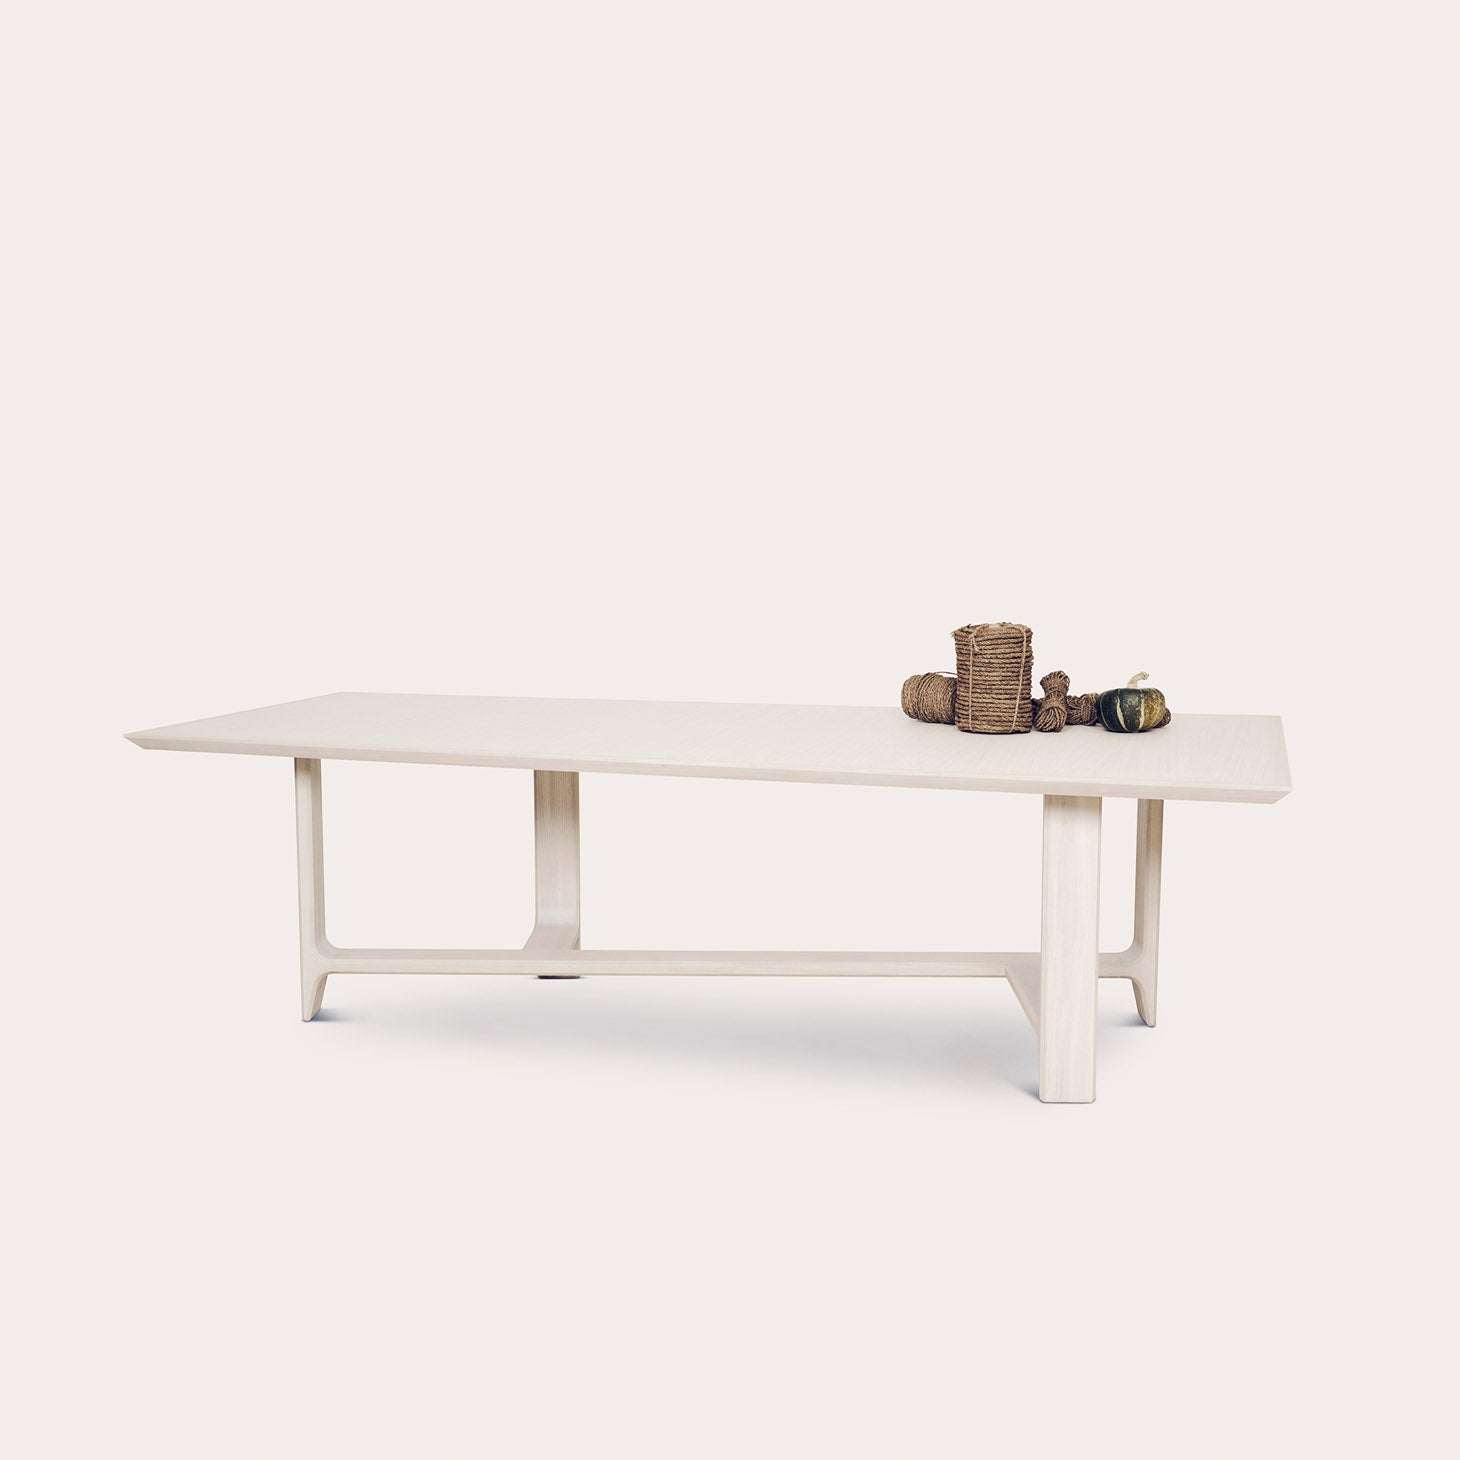 AHA Tables Forest & Giaconia Designer Furniture Sku: 008-230-10381